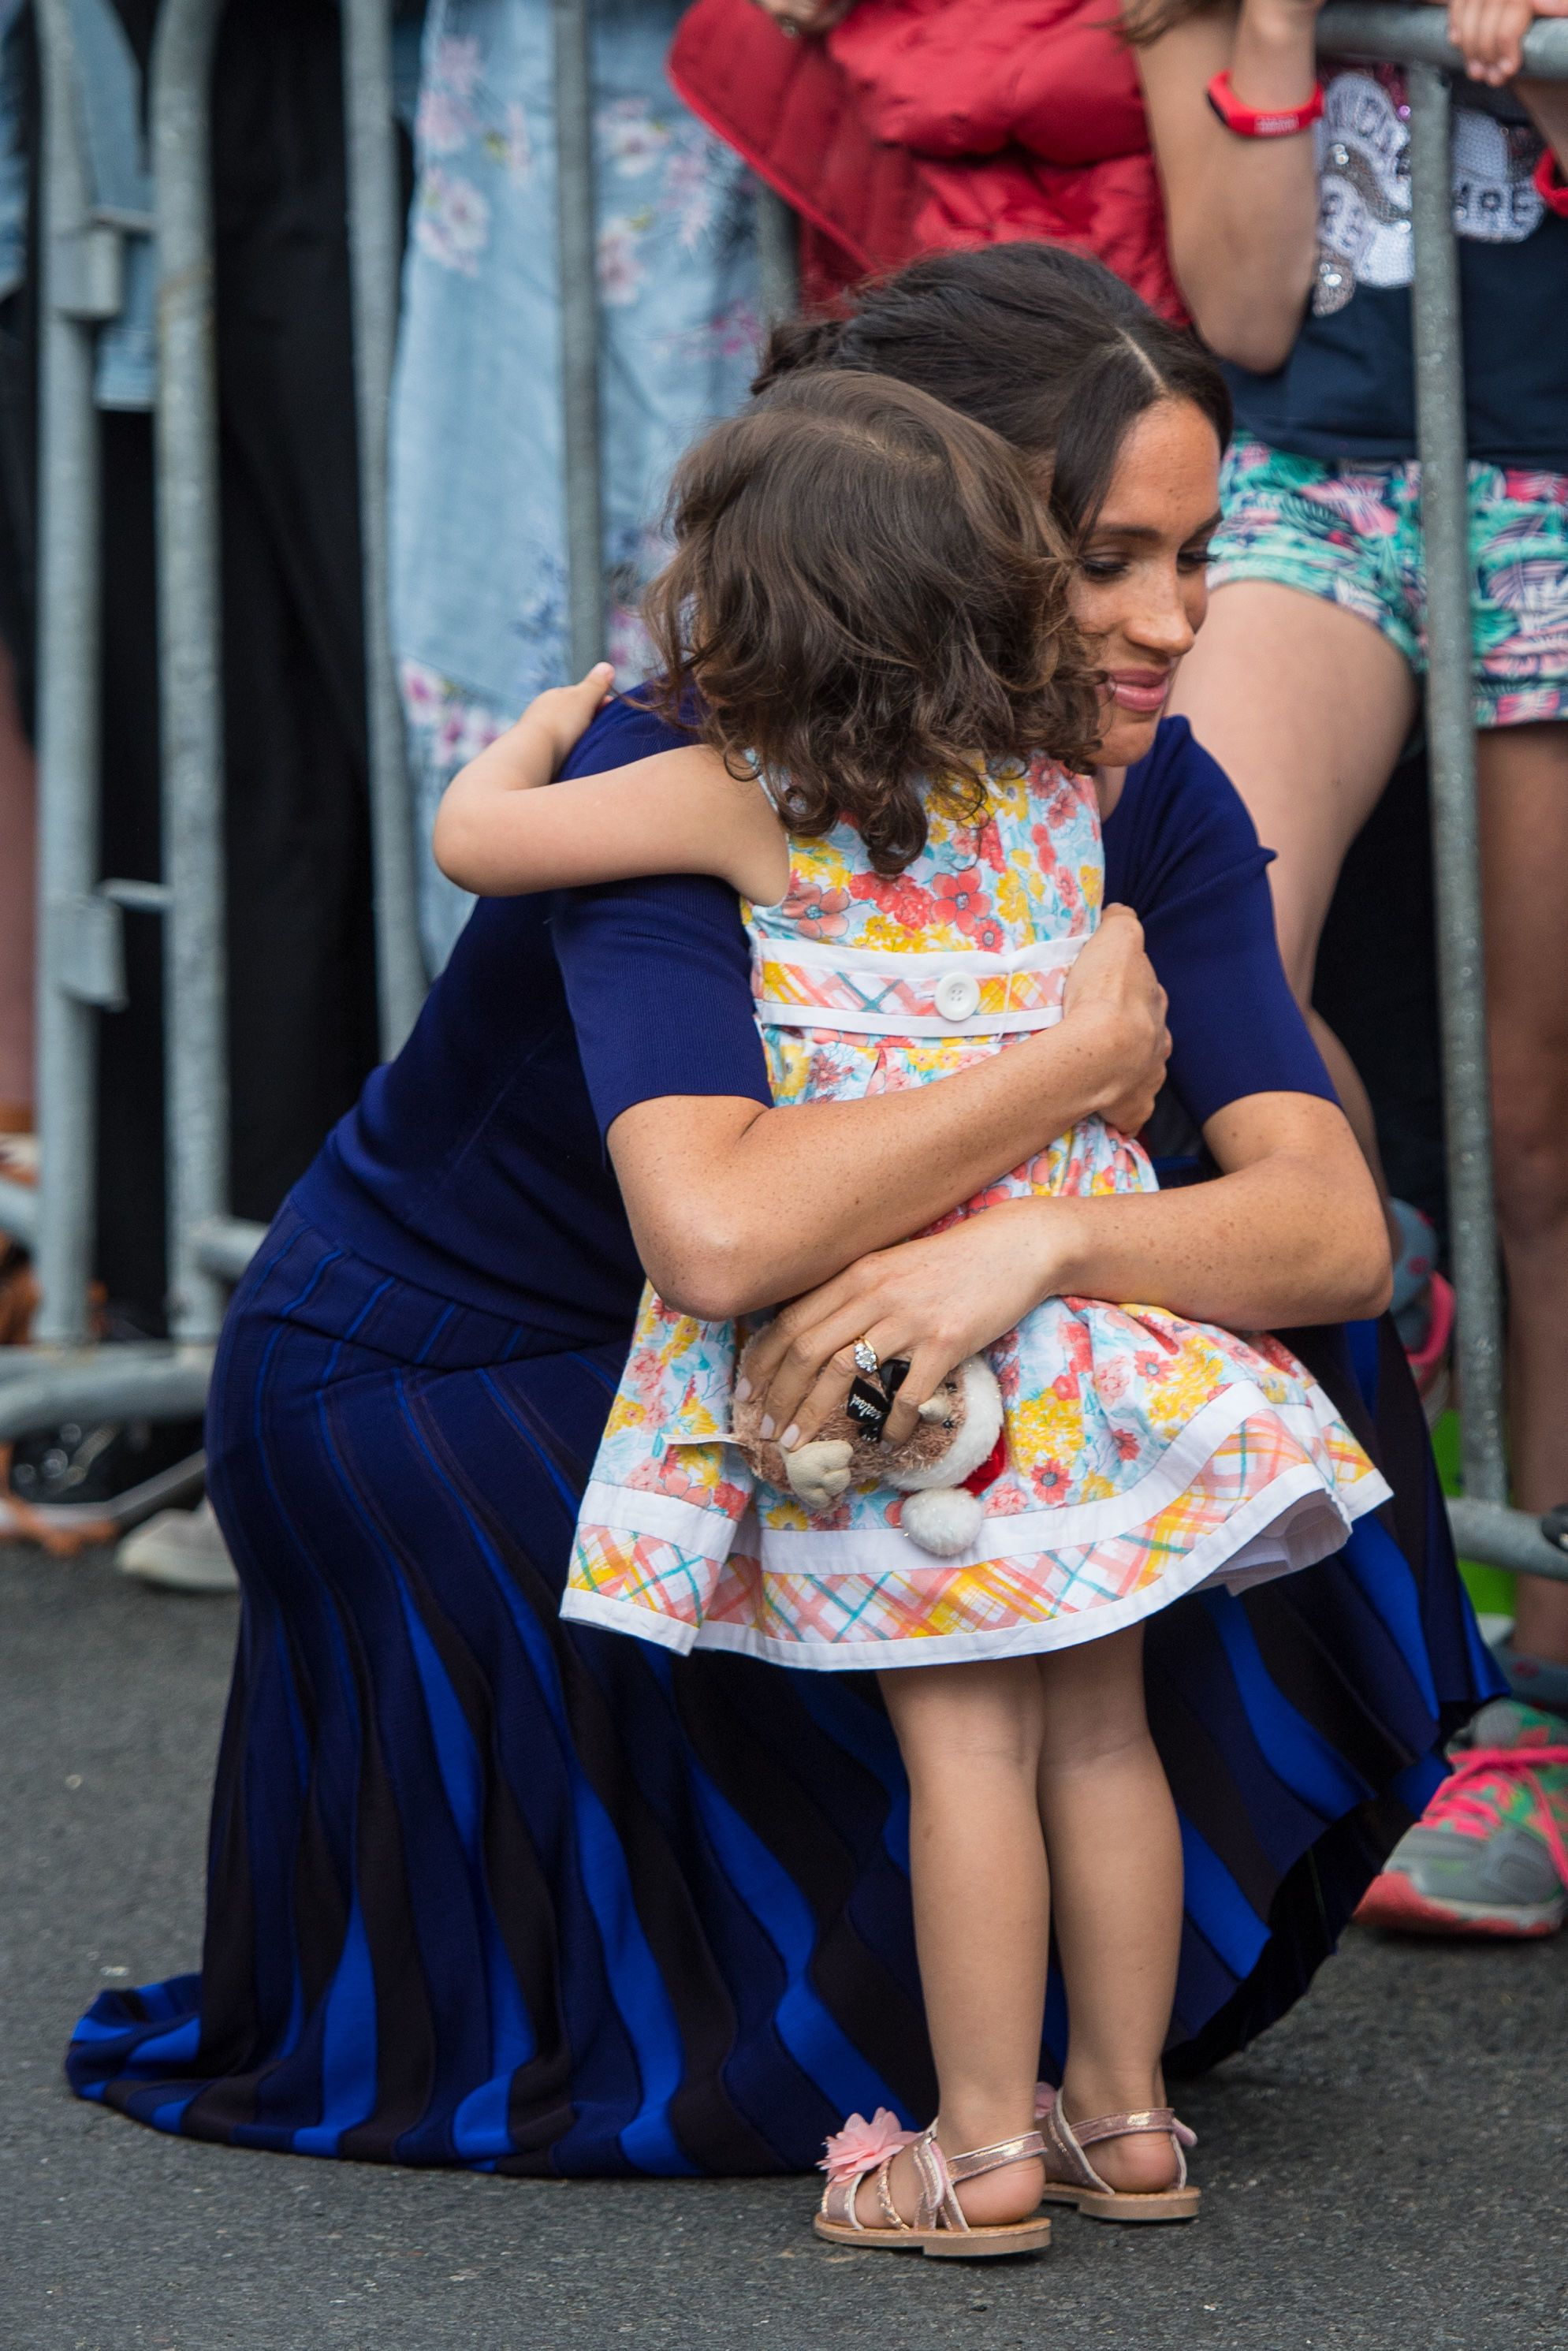 Meghan Markle Gets A Hug From Toddler Who Crept Through The